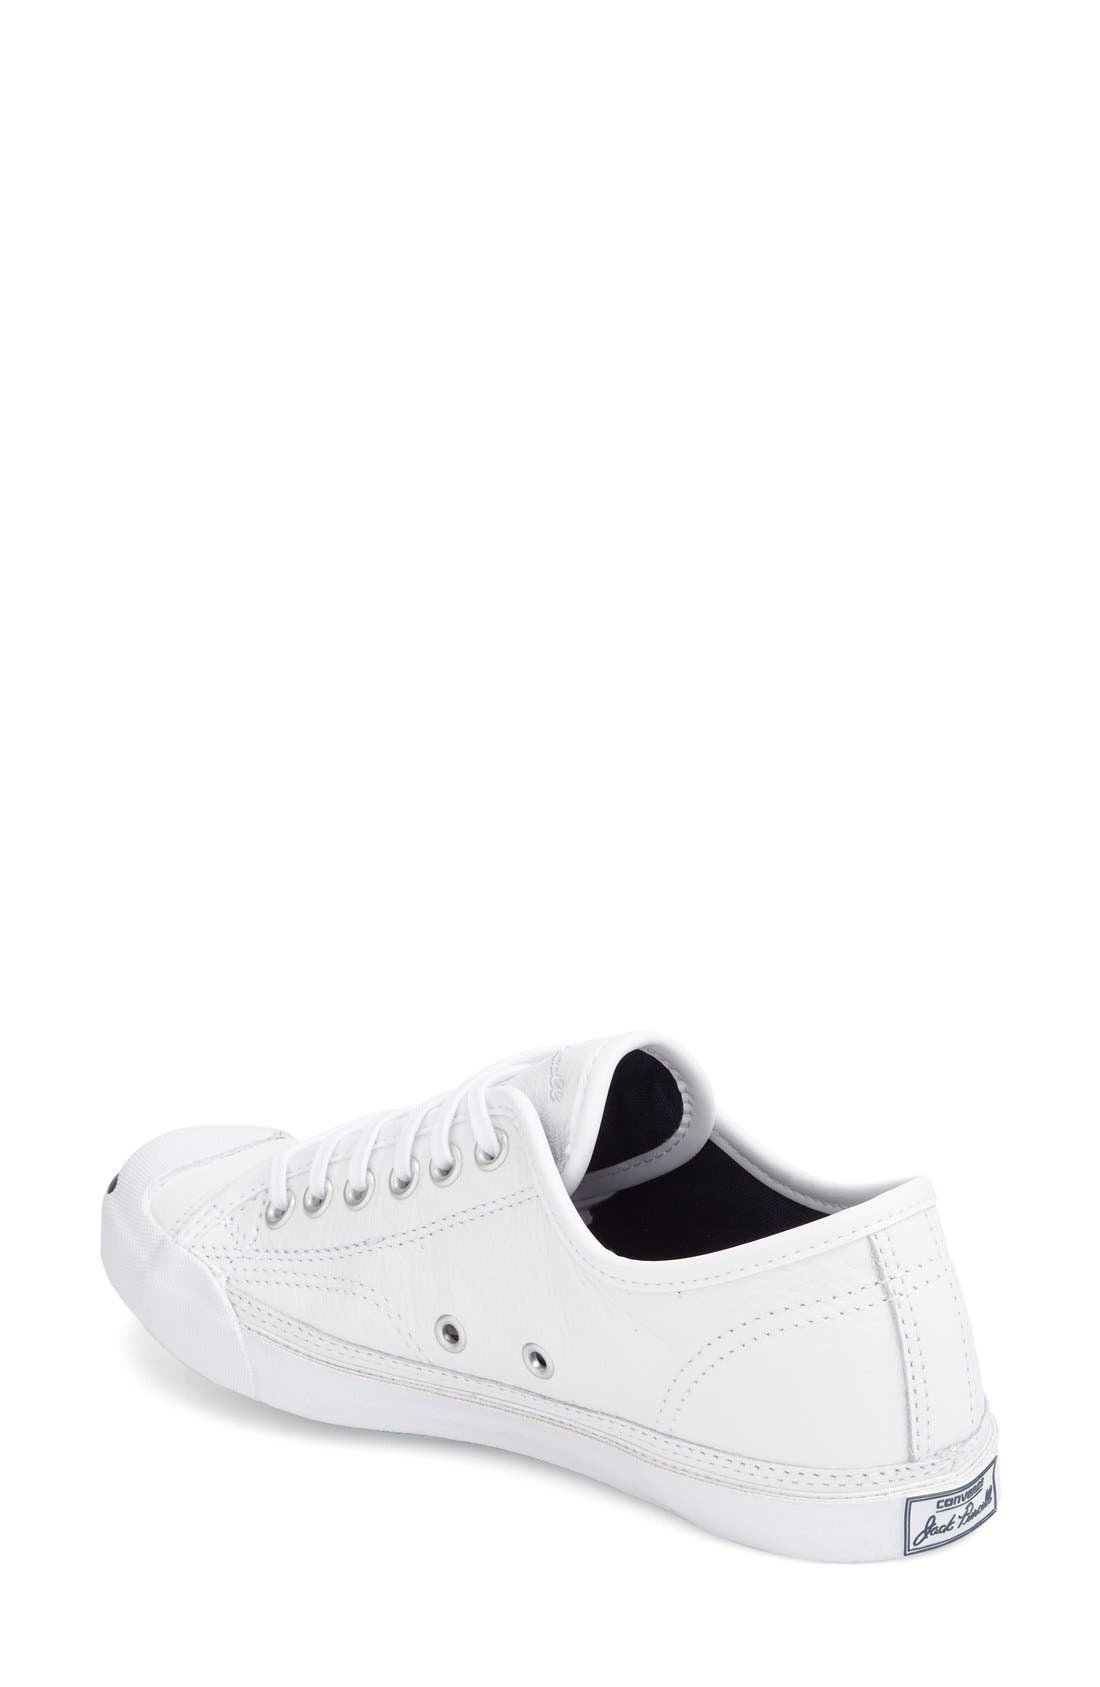 Alternate Image 2  - Converse 'Jack Purcell' Low Top Sneaker (Women)